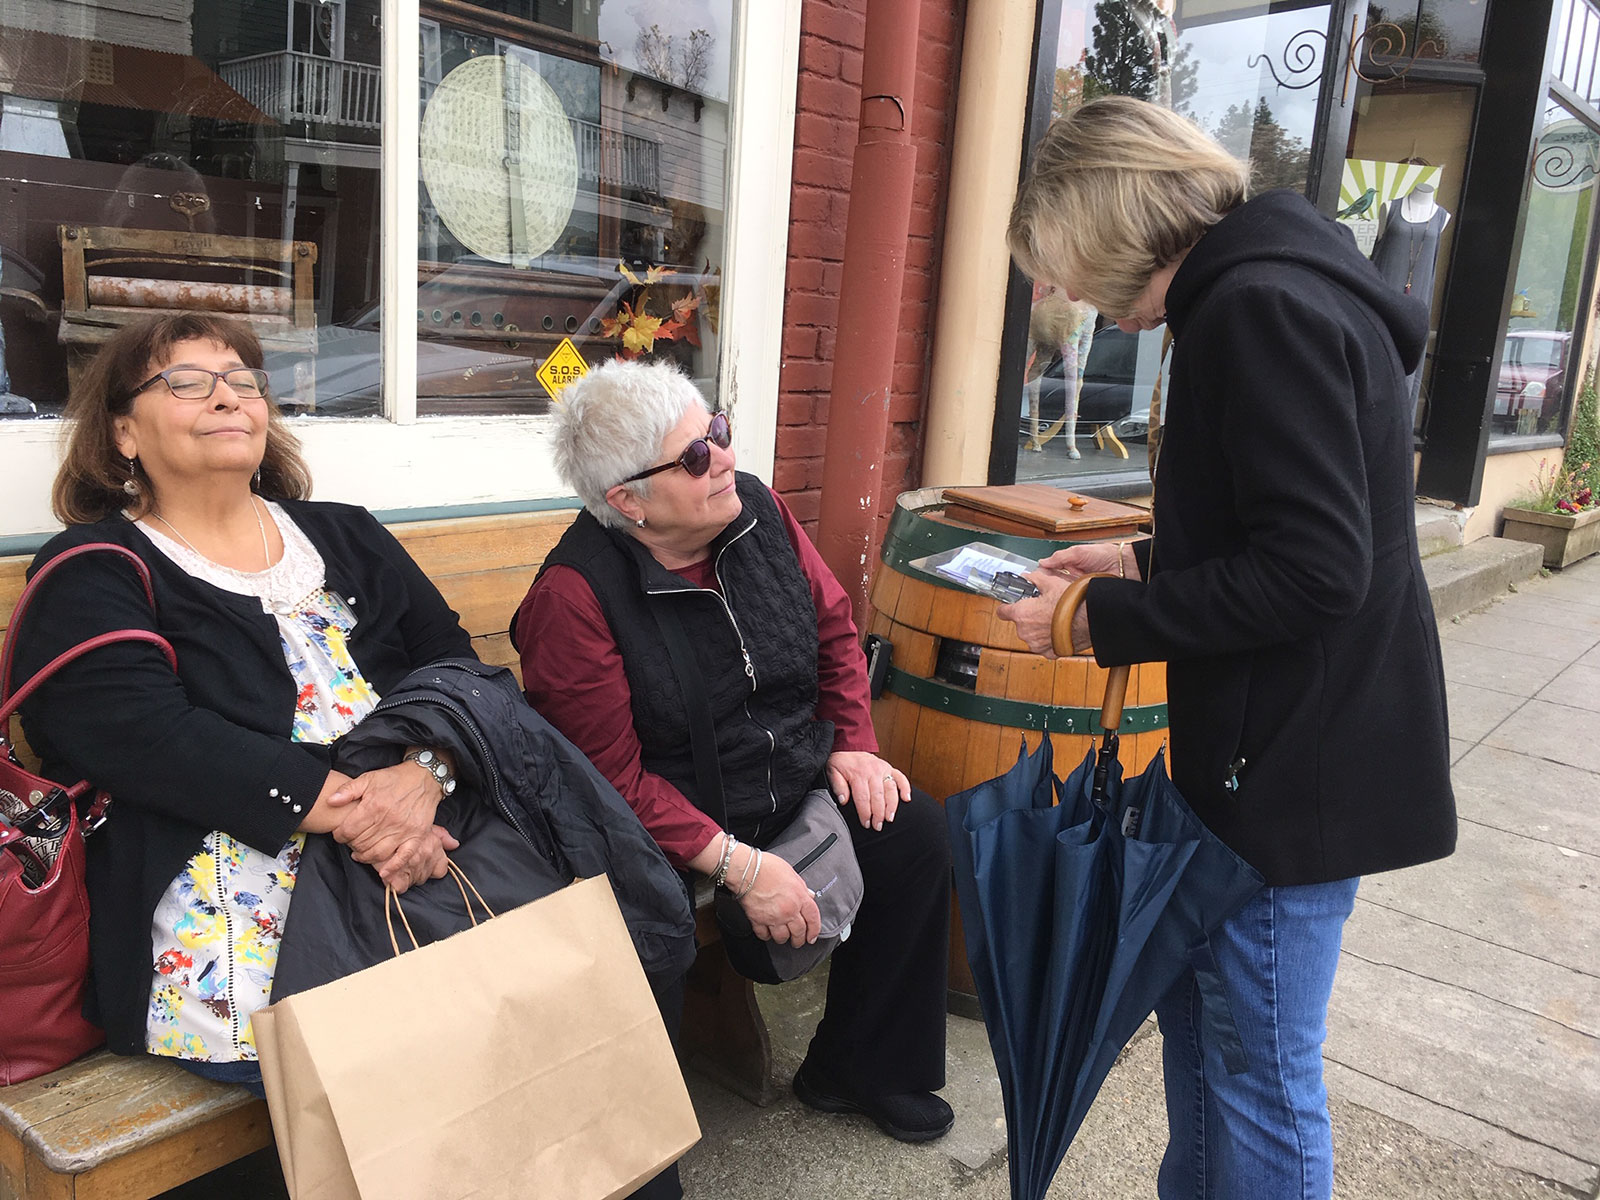 Poets on the Loose in Jacksonville! Anne Brooke reads a poemt to two ladies taking a break from shopping on California Street